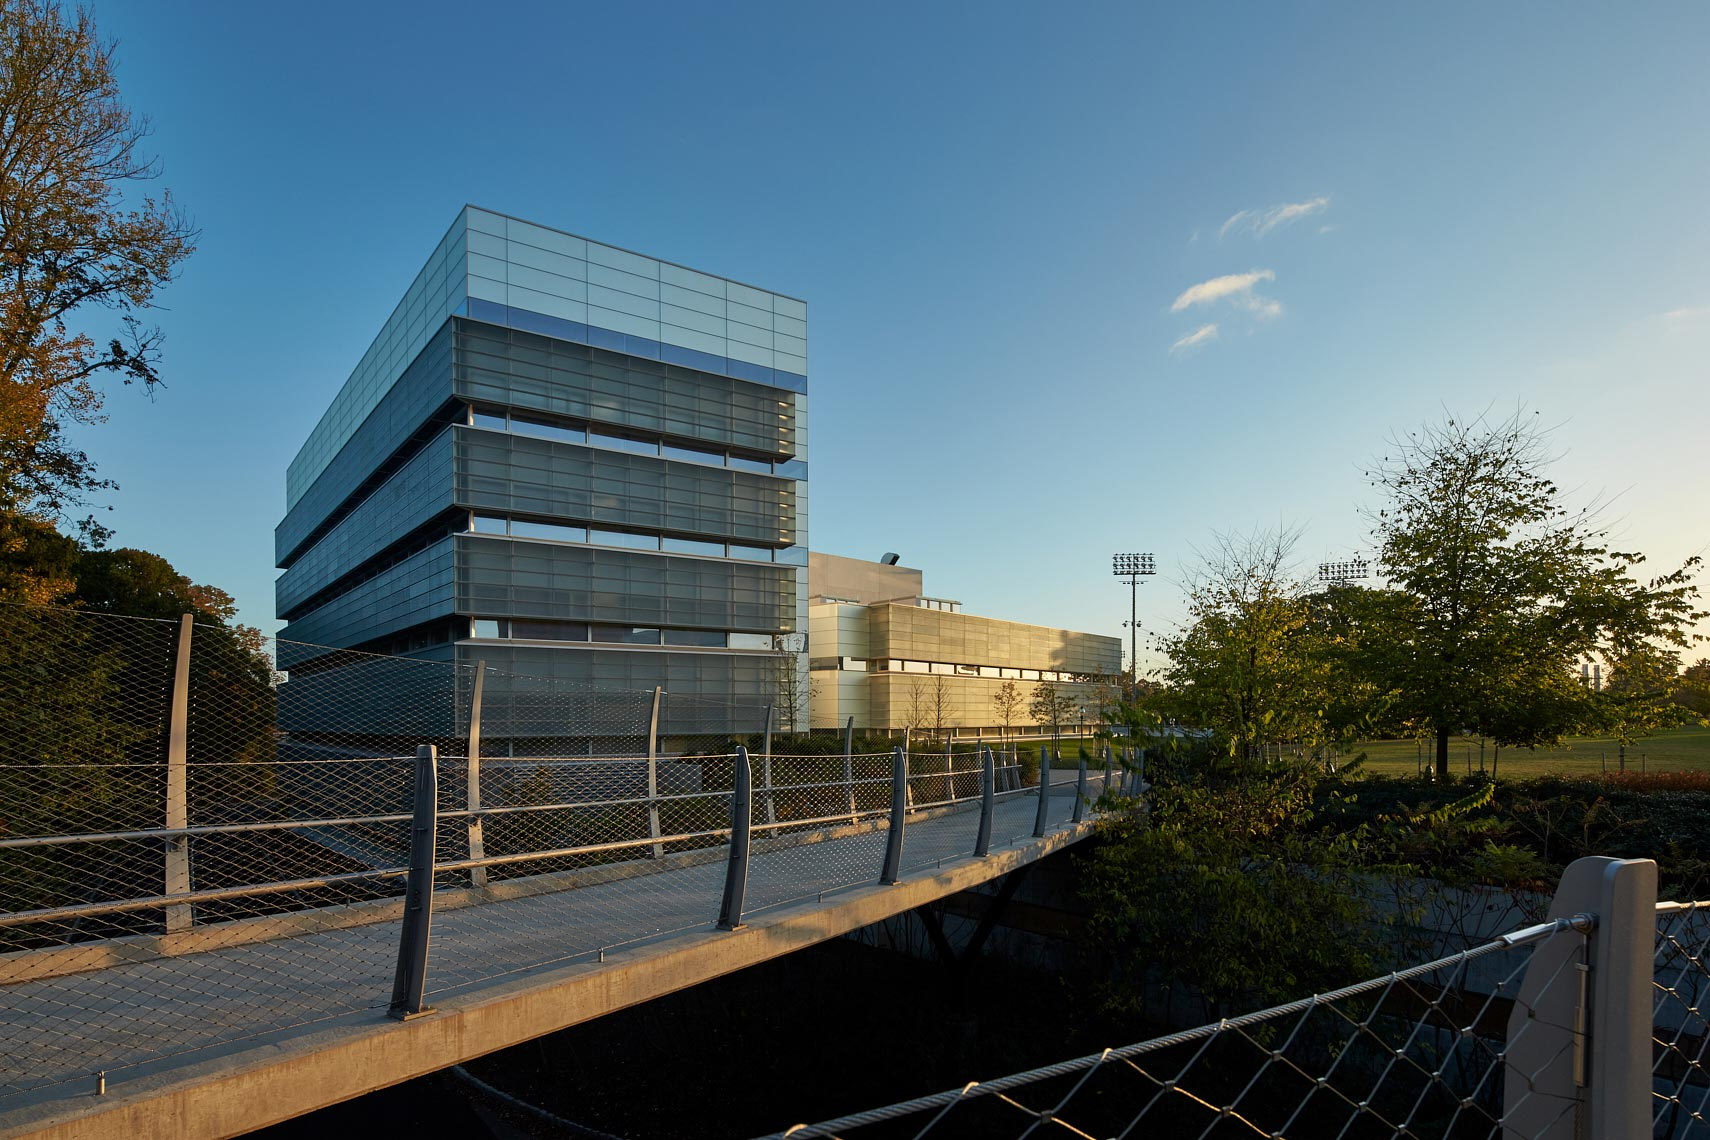 Peretsman Scully Hall and the Princeton Neuroscience Institute with Streicker Bridge